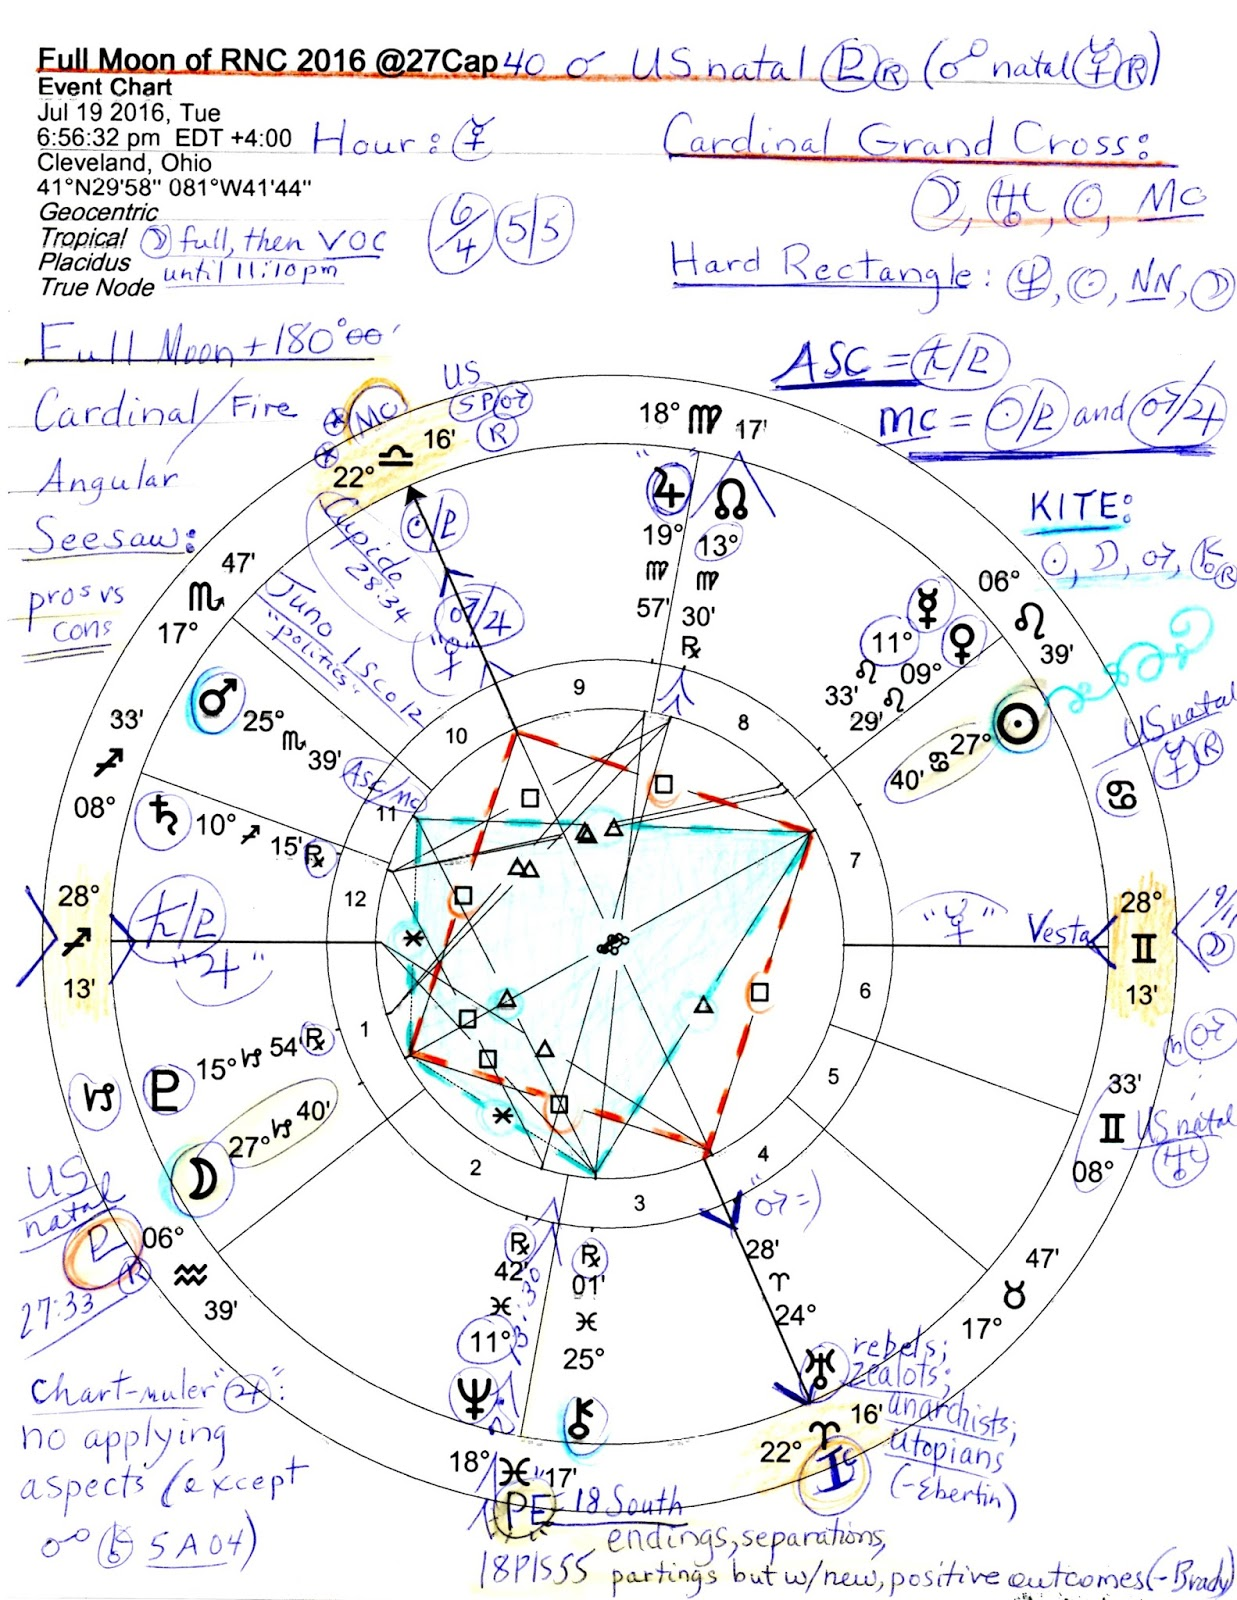 Stars over washington march 2018 trumps natal libra trio of neptune chiron jupiter is at mc the goal point and radical chaos creator uranus is at ic the foundation of the chart geenschuldenfo Image collections